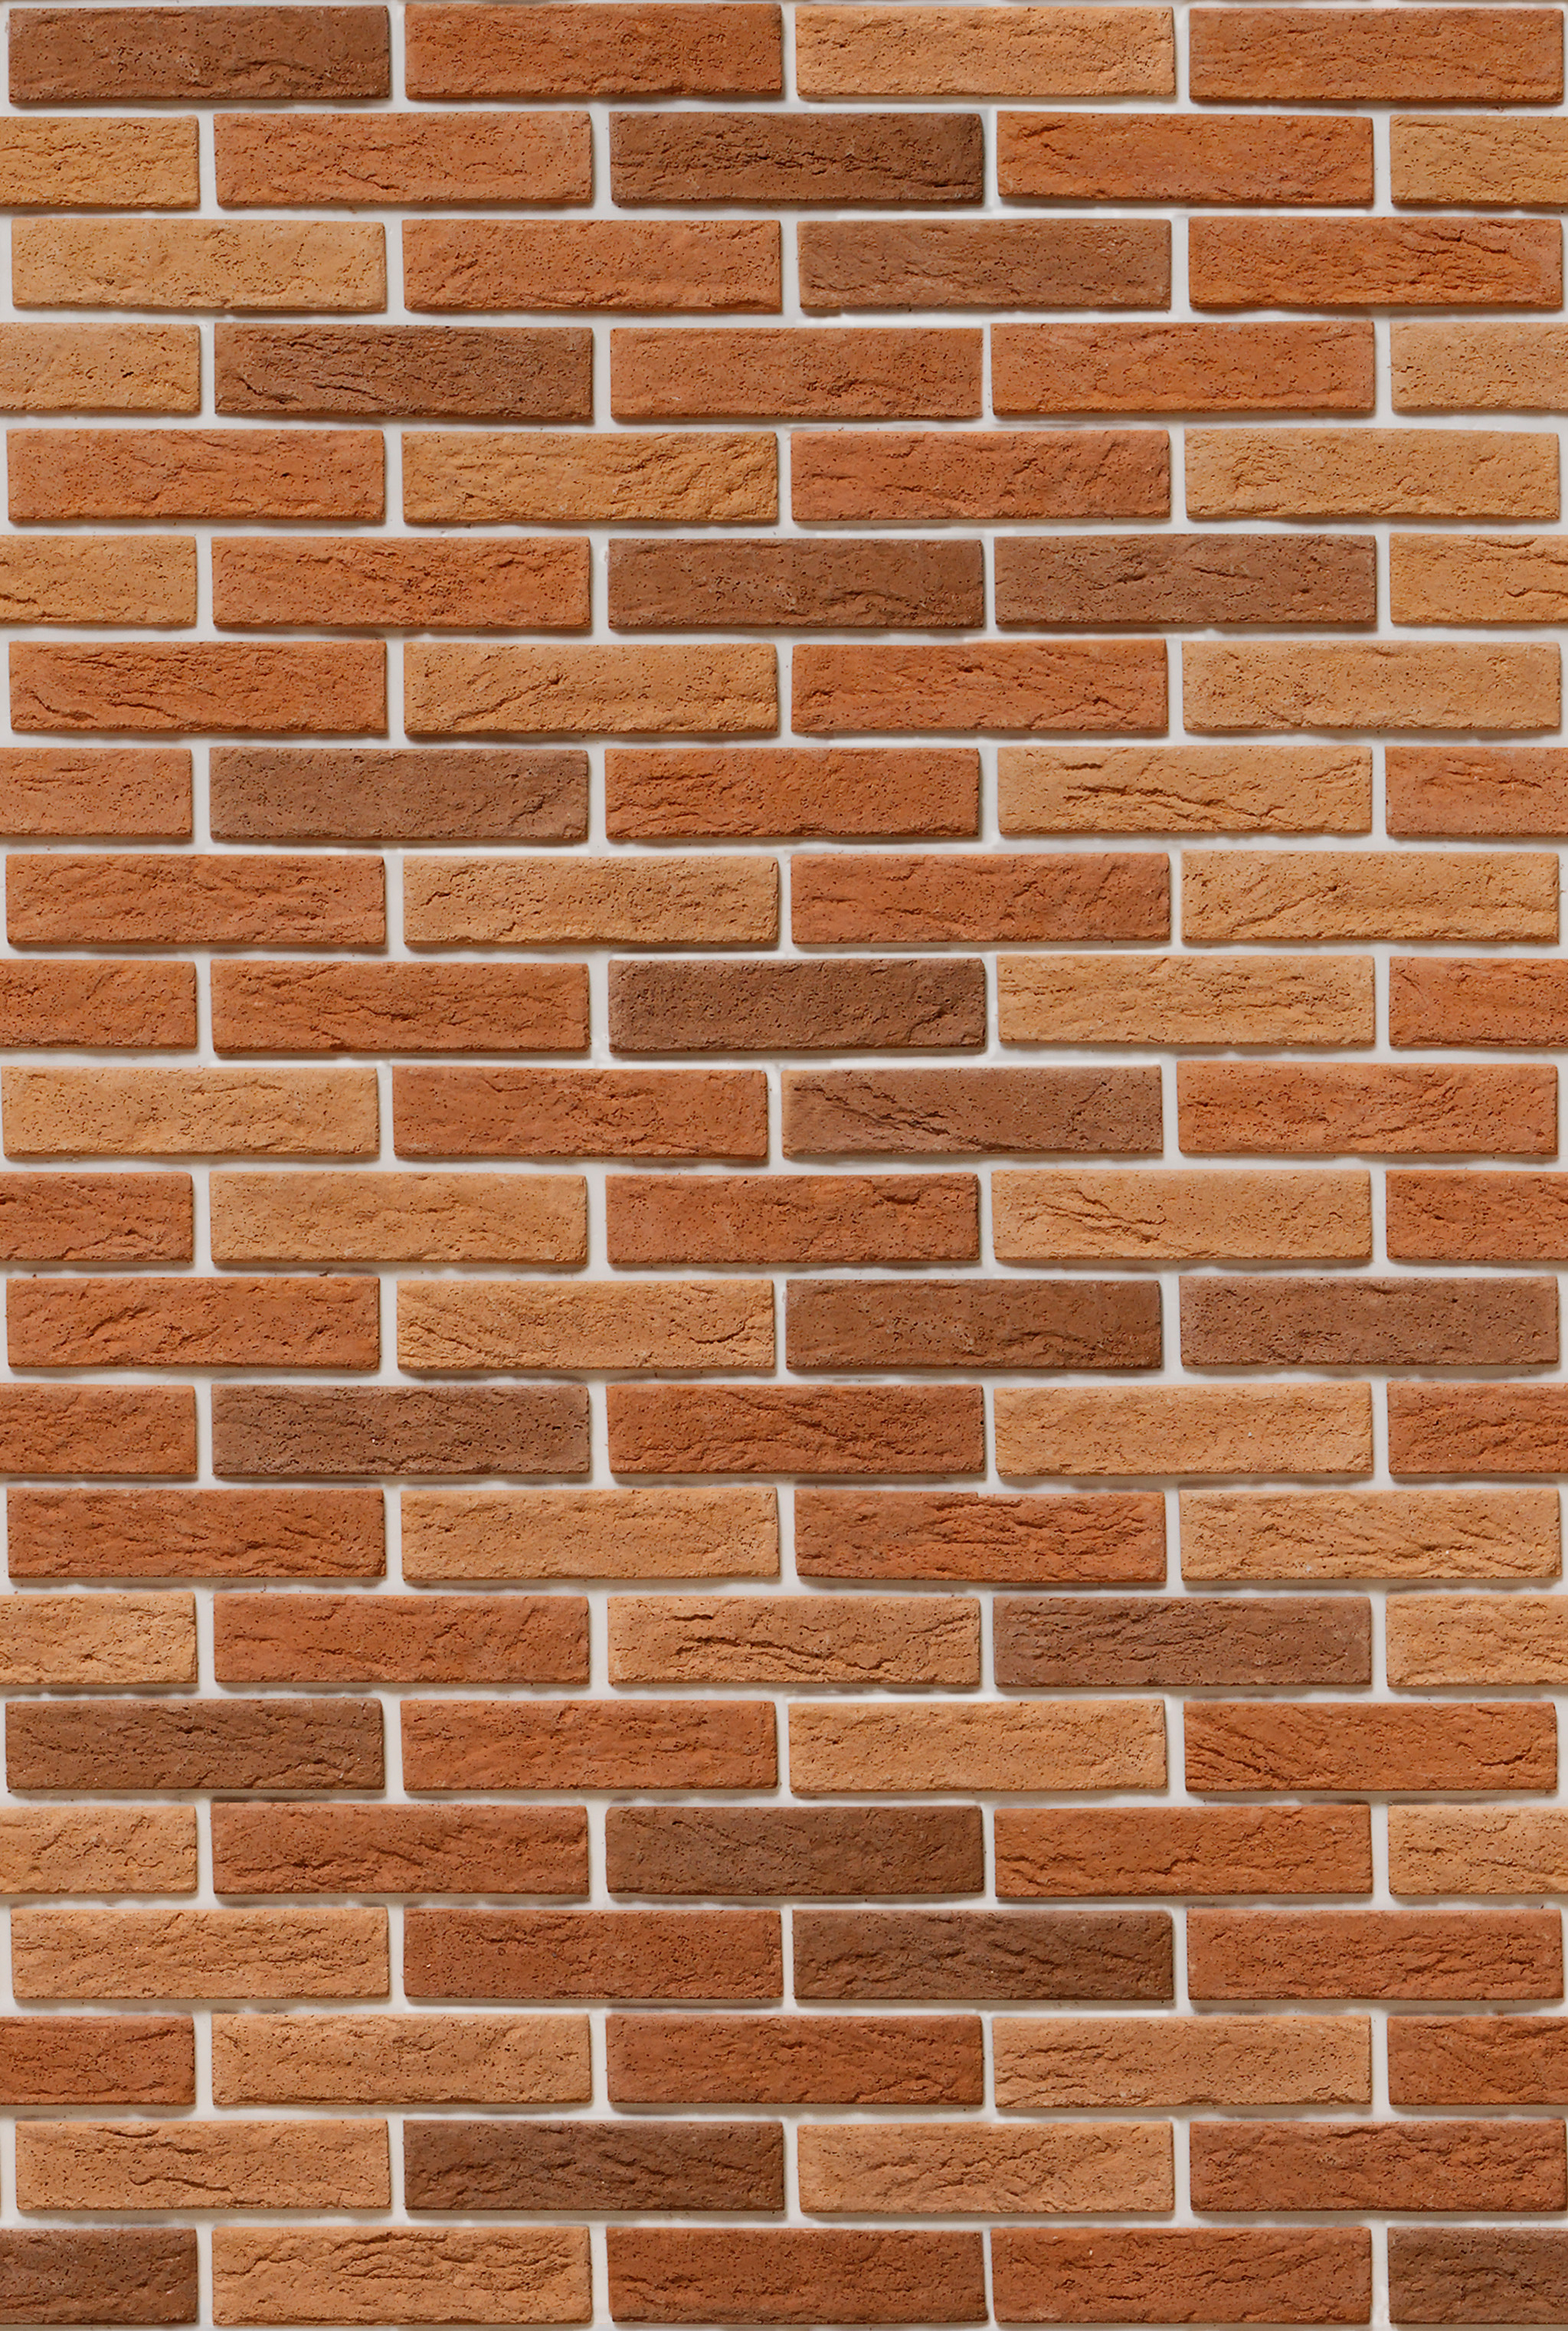 Amazoncom Art3d White Wall Panels Brick Design 3D Wall